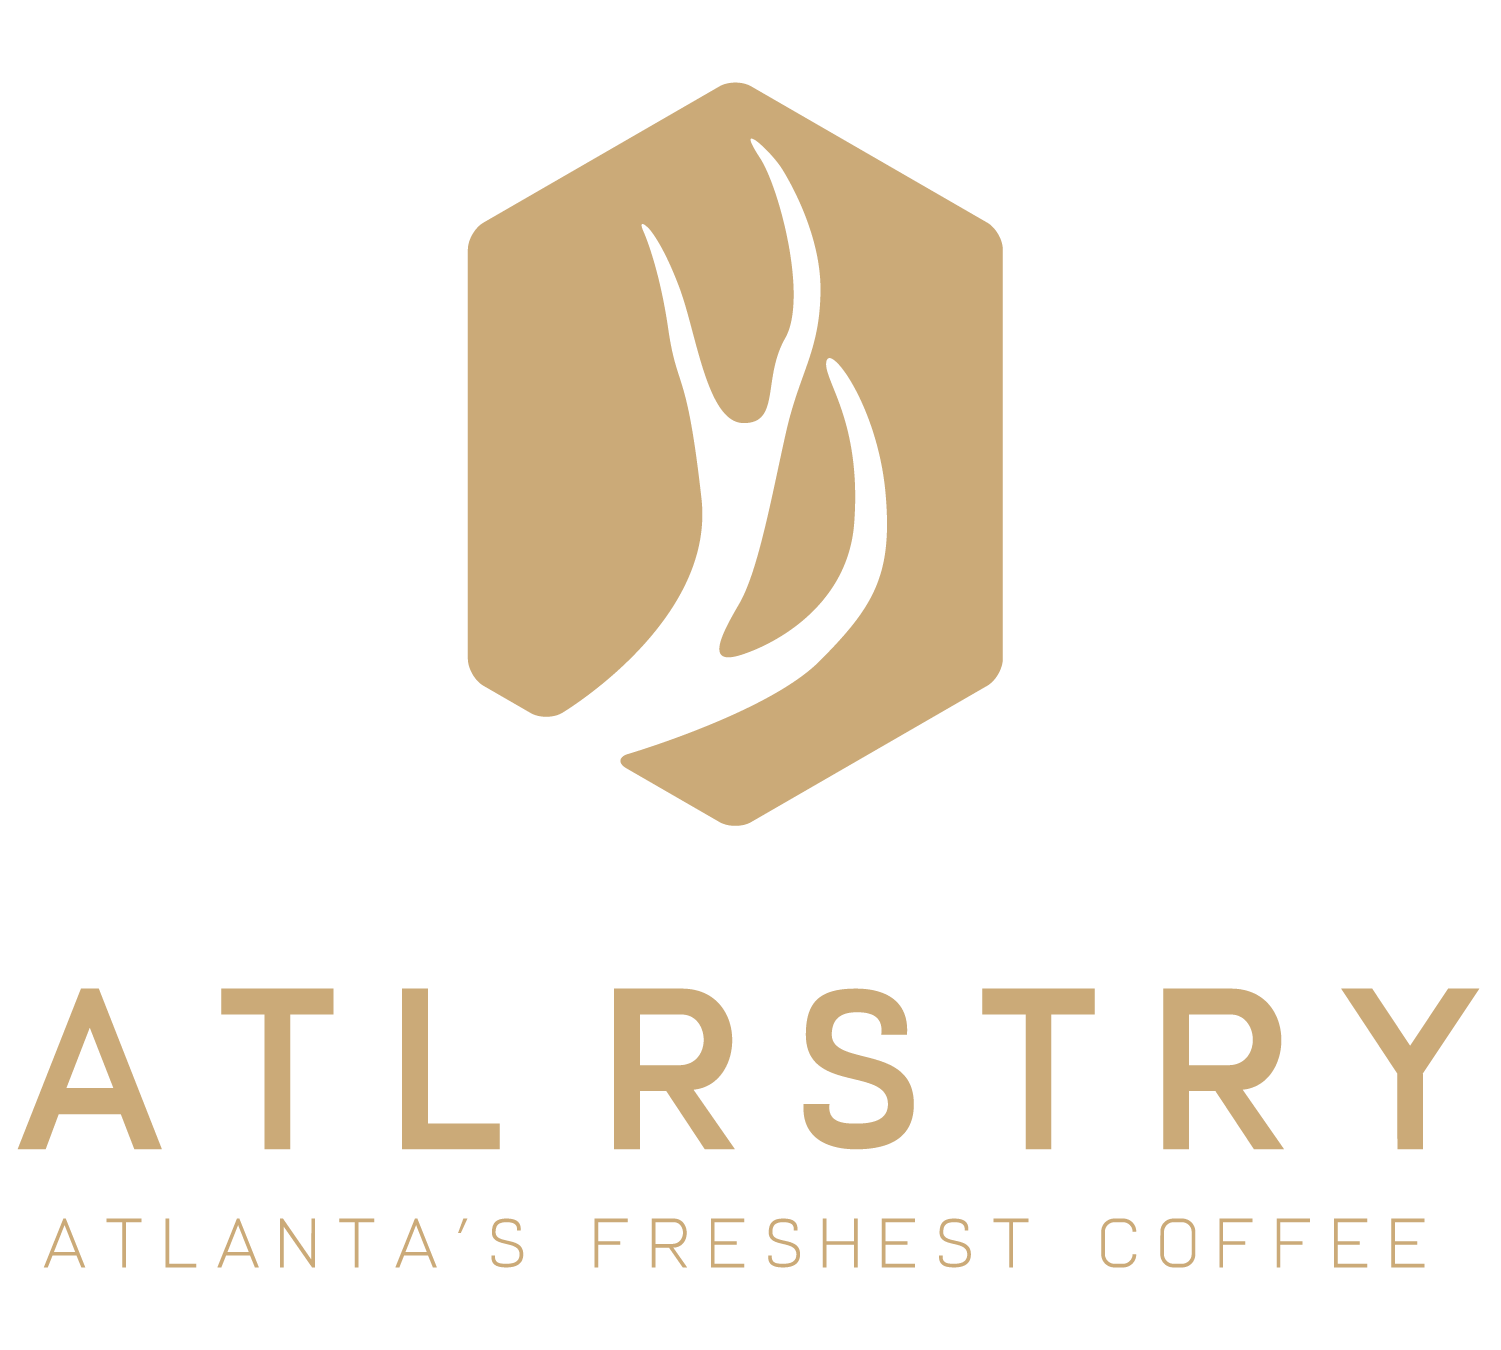 https://brittcreative.co/wp-content/uploads/2019/02/ATL-RSTRY_MainLogo_Gold.png